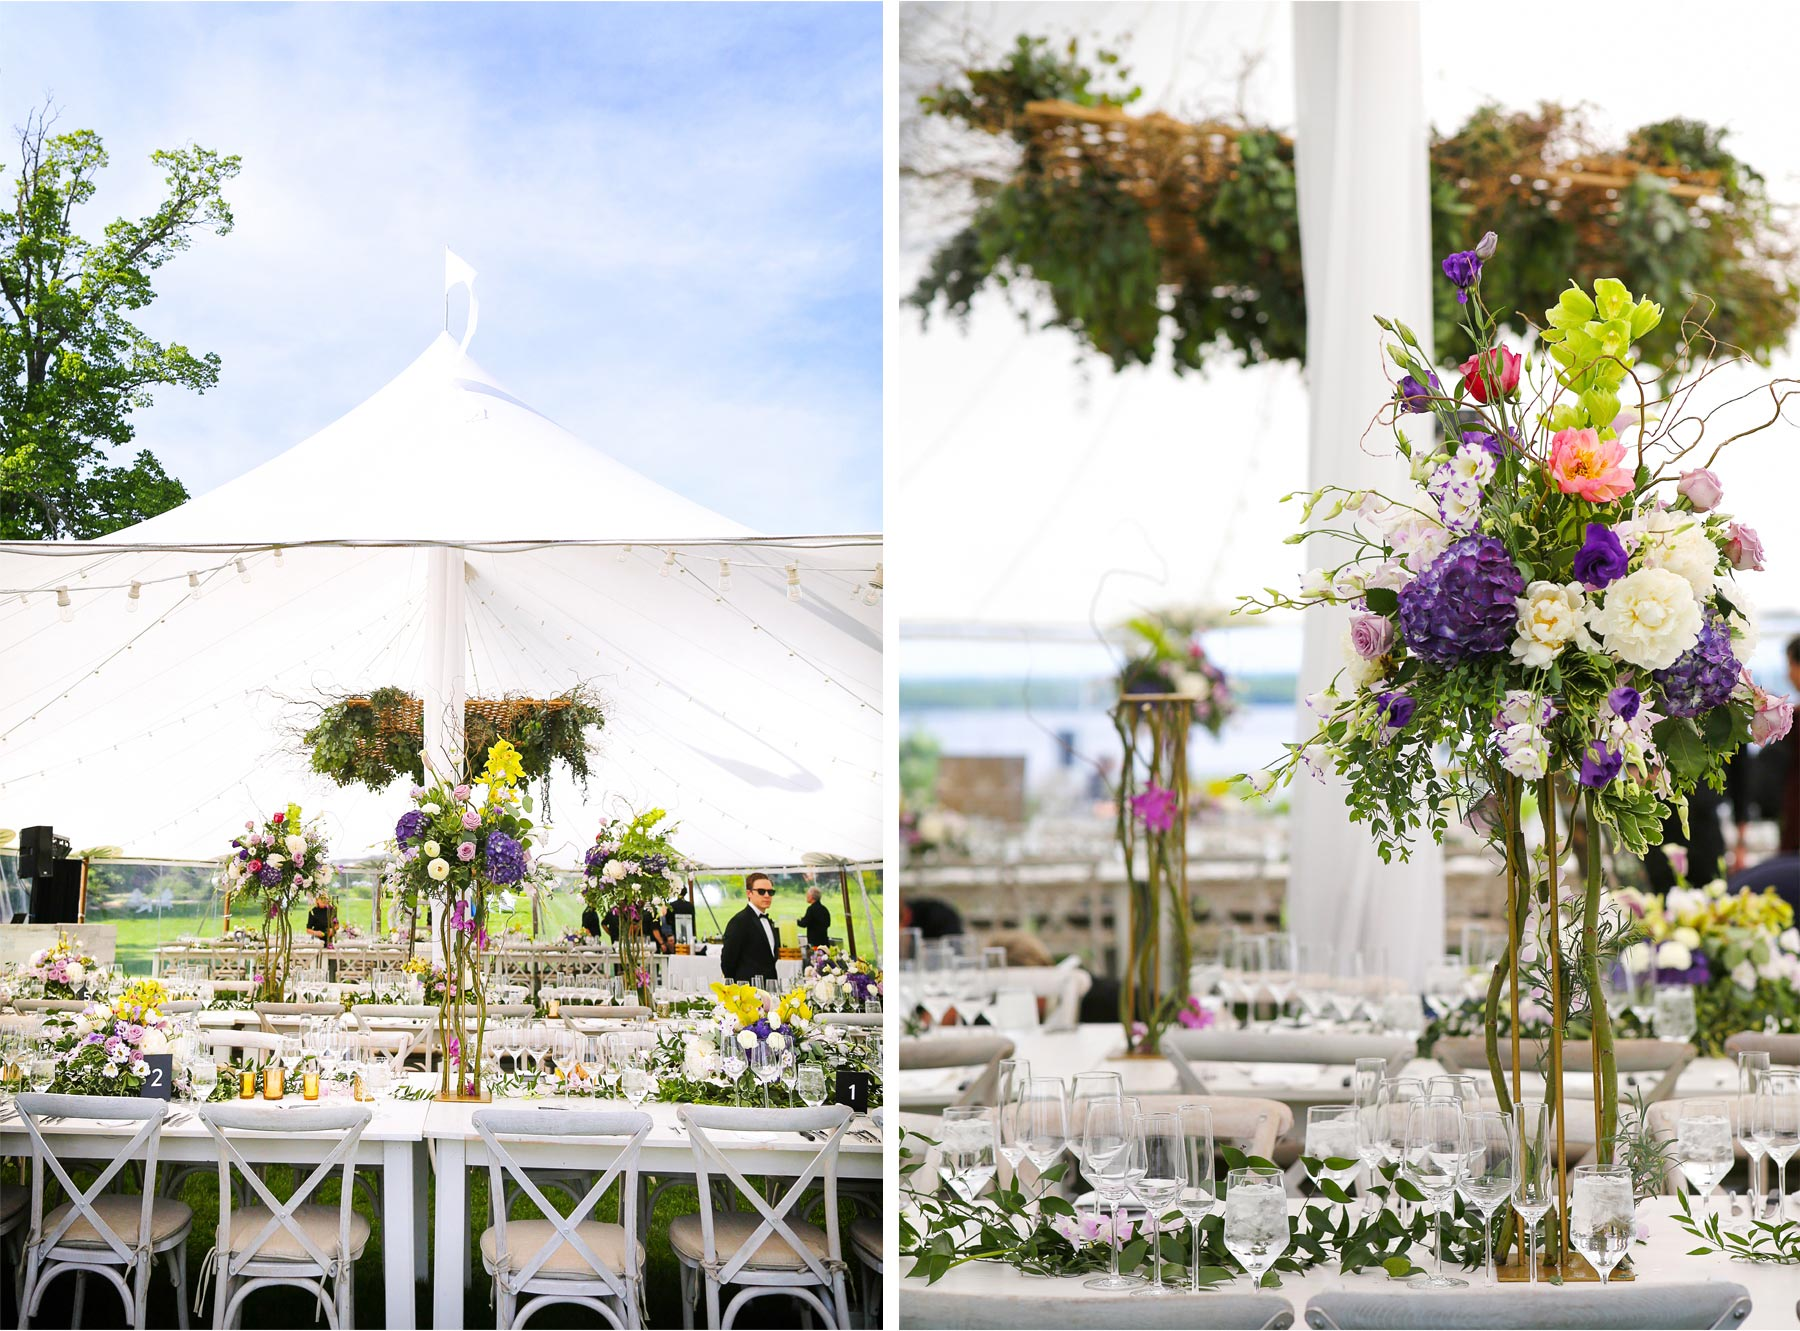 15-Vick-Photography-Wedding-Stouts-Island-Lodge-Wisconsin-Summer-Reception-Outdoor-Flowers-Tables-Tent-MiJa-and-Lucius.jpg